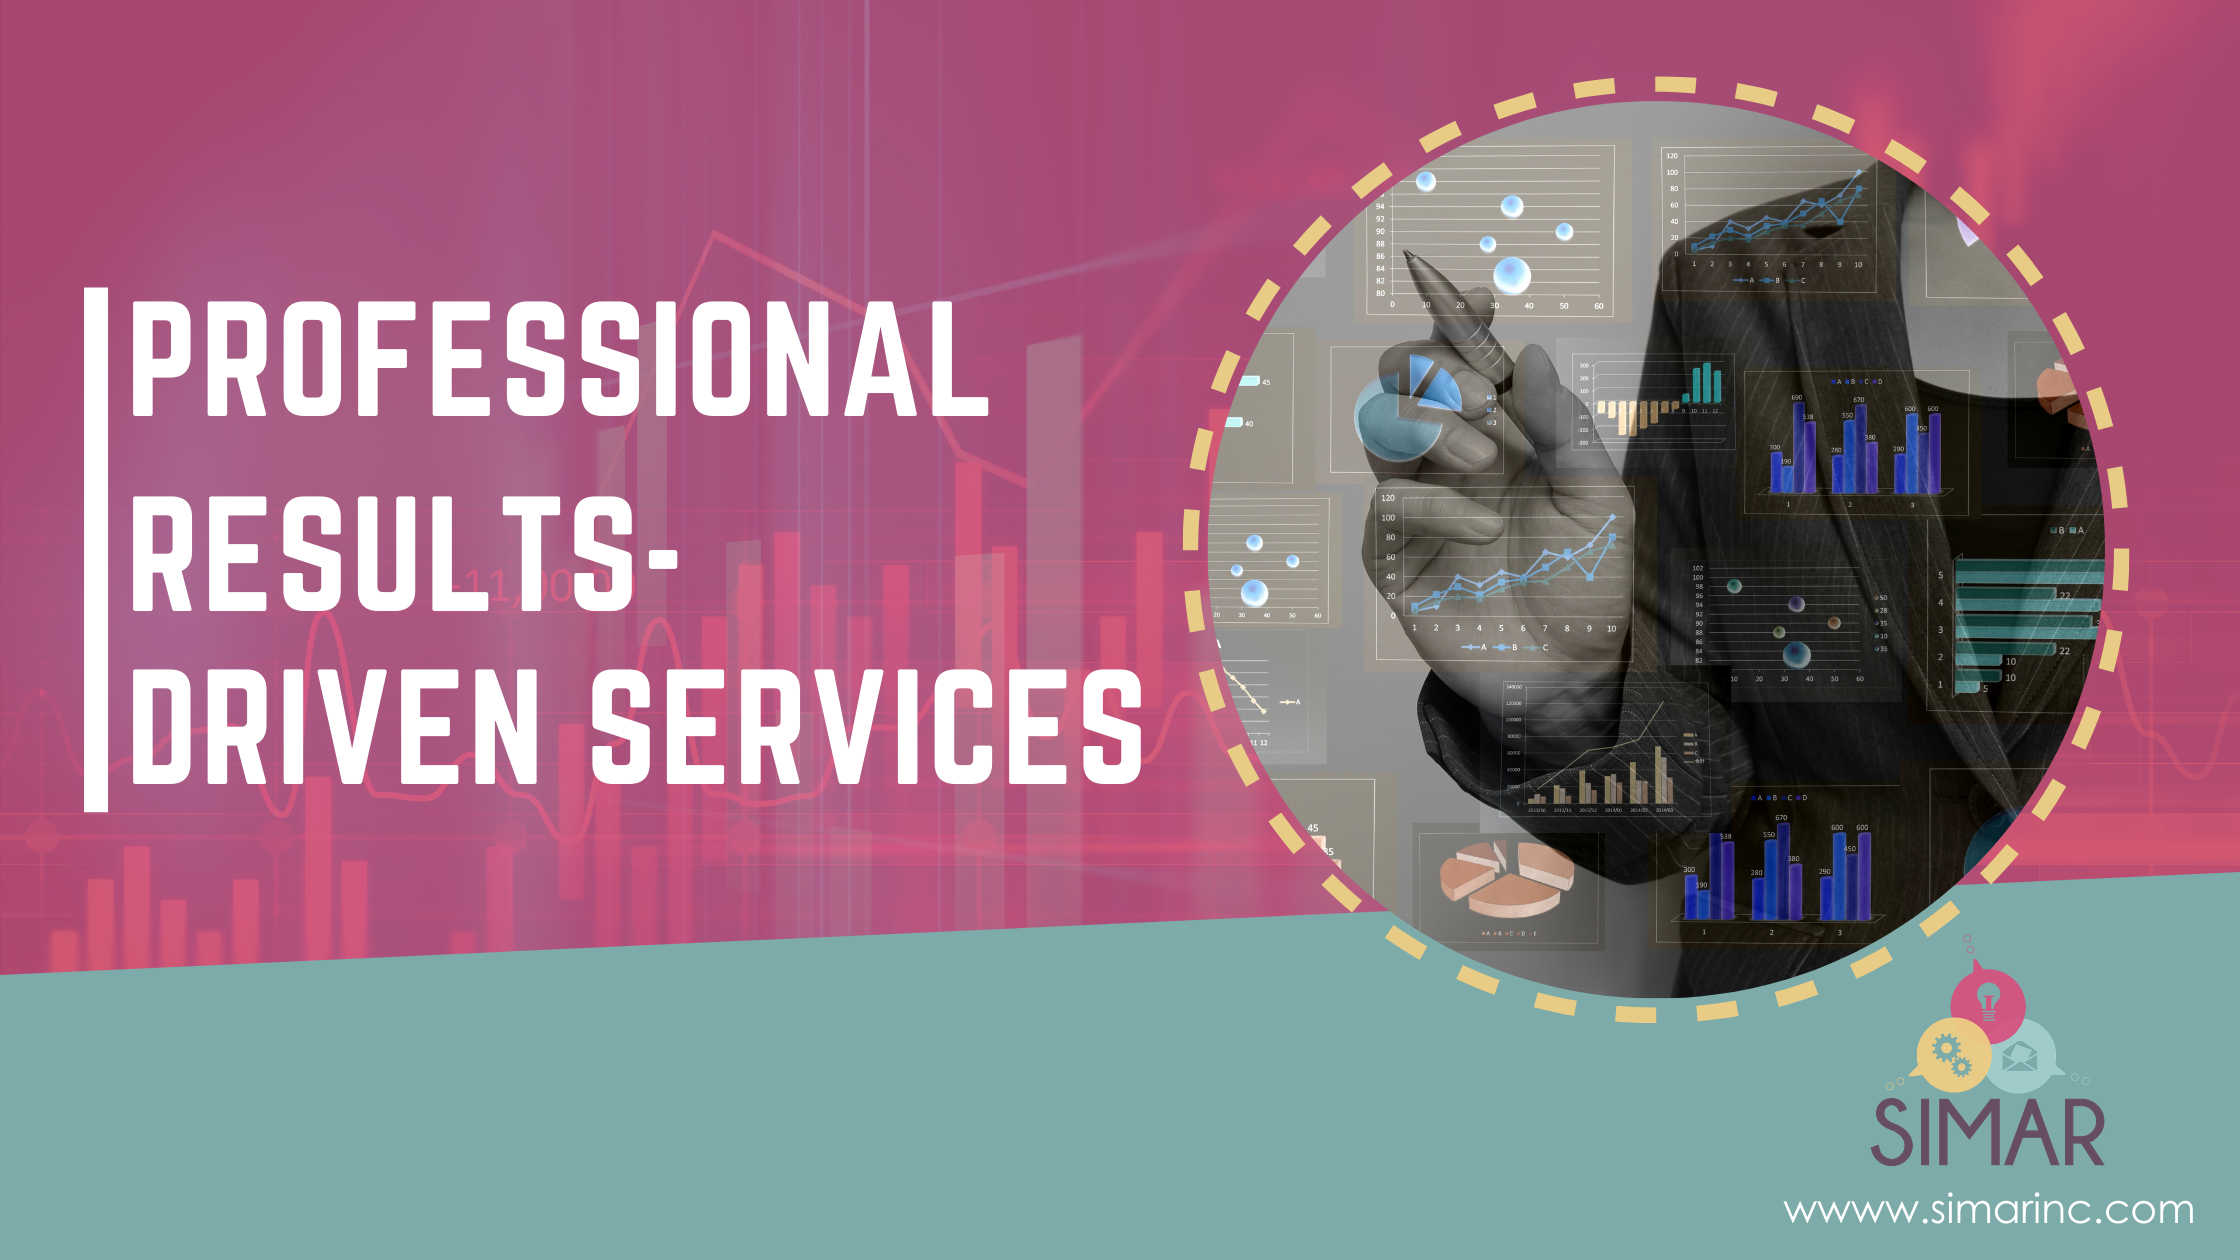 Professional Results-Driven Services